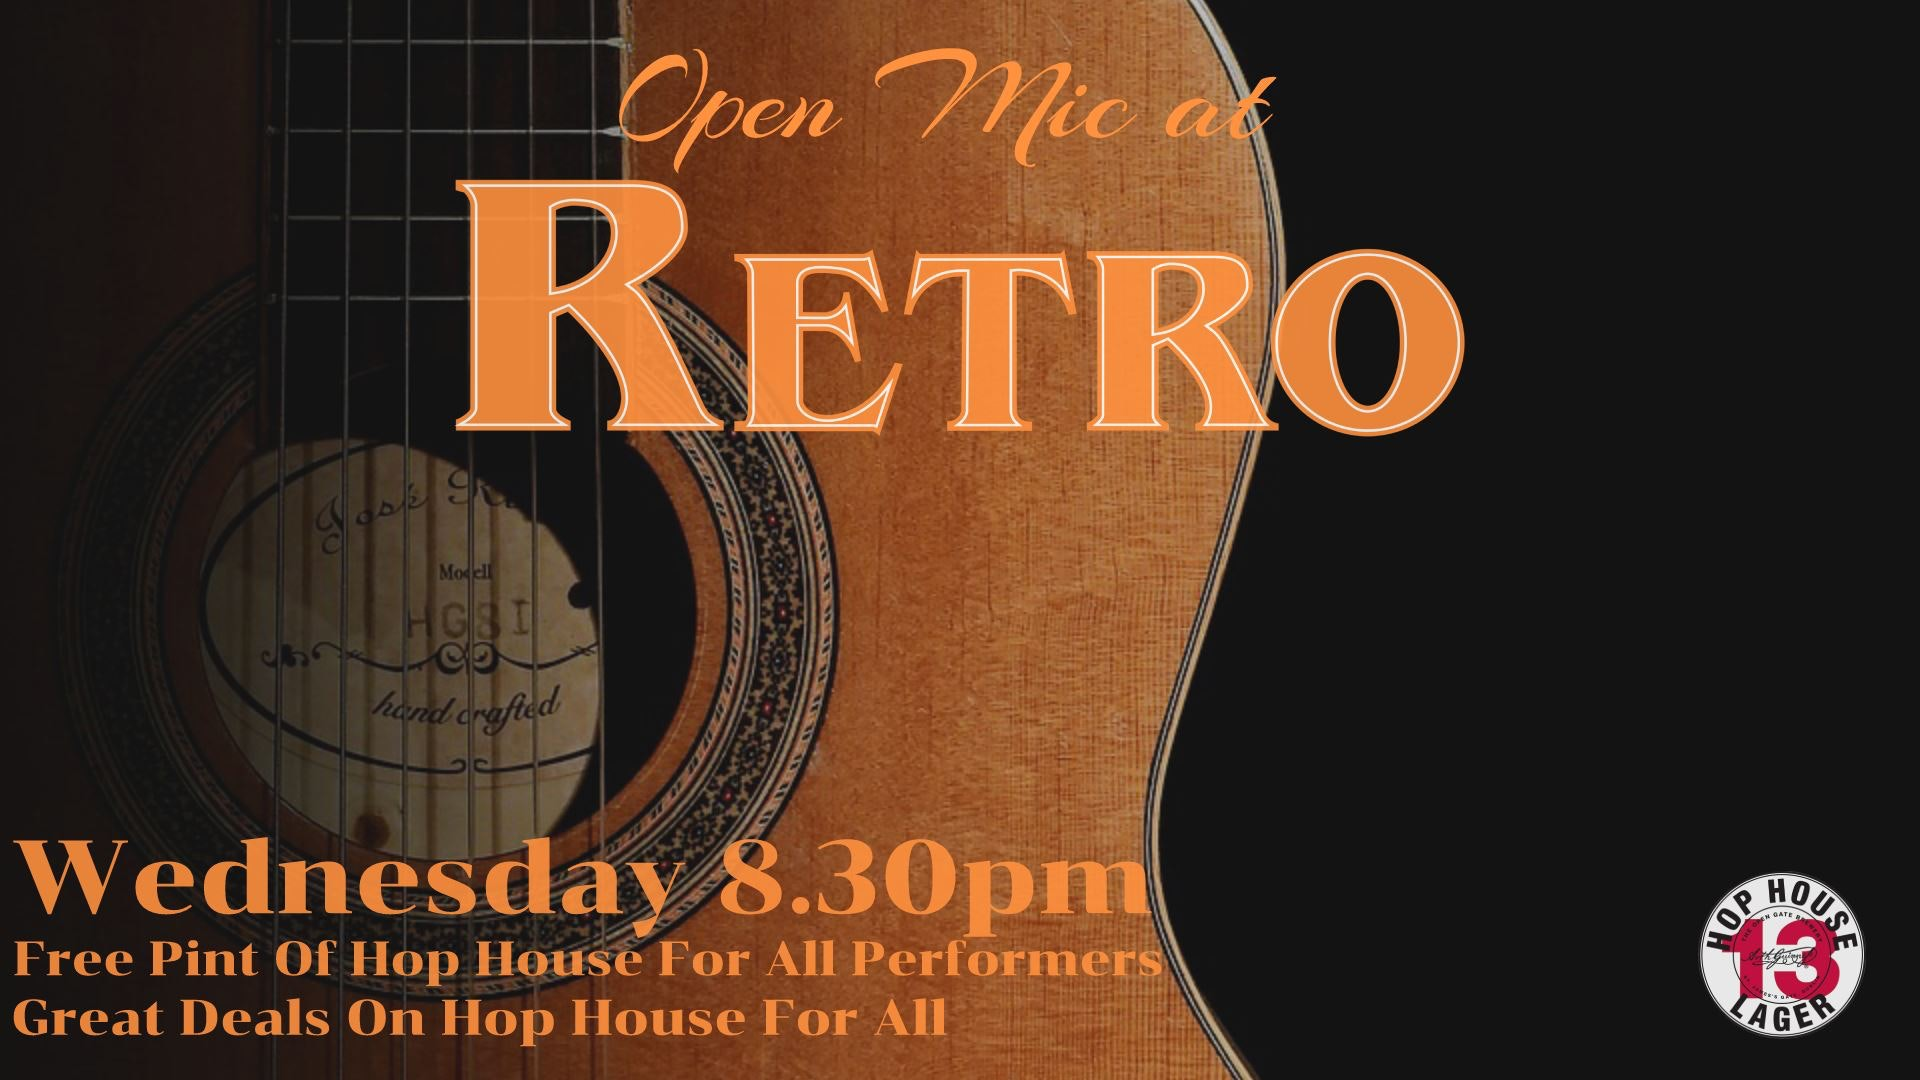 Open Mic at Retro